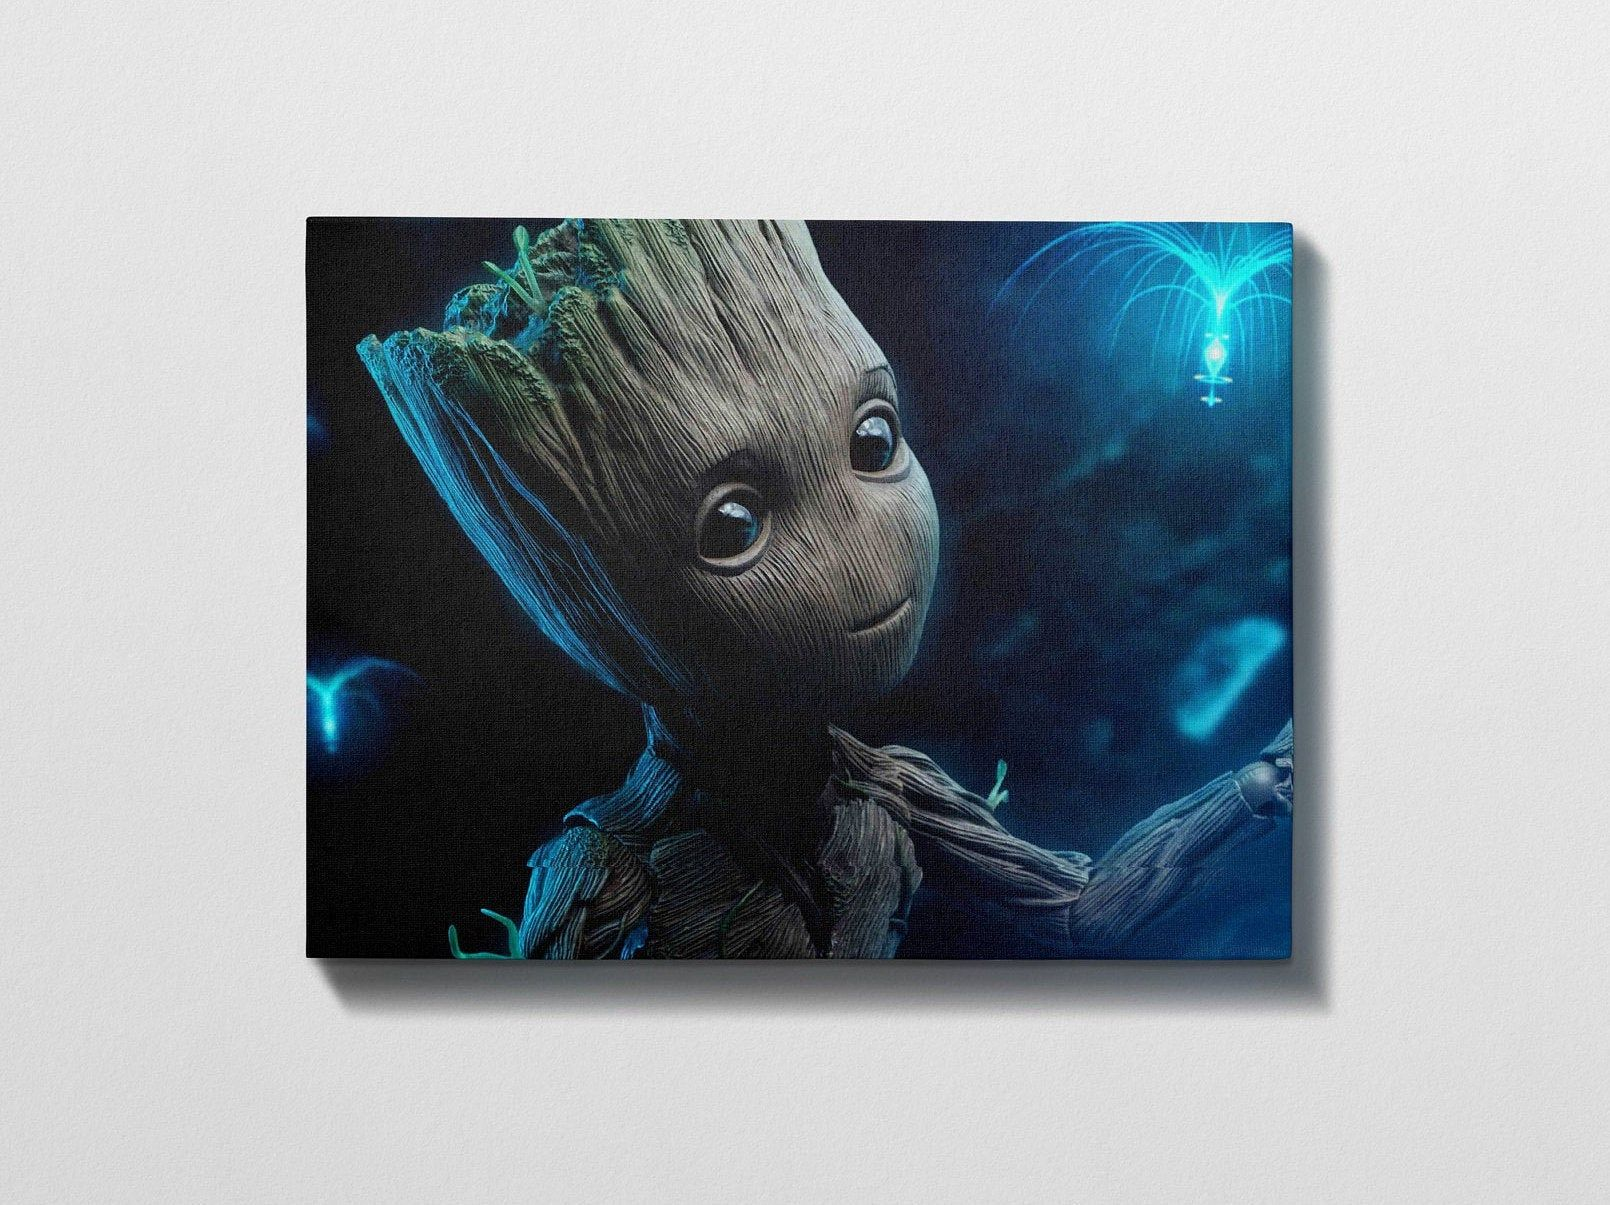 Guardians Of The Galaxy Groot Movie Art High Quality Etsy Movie Art Art Canvas Wall Art